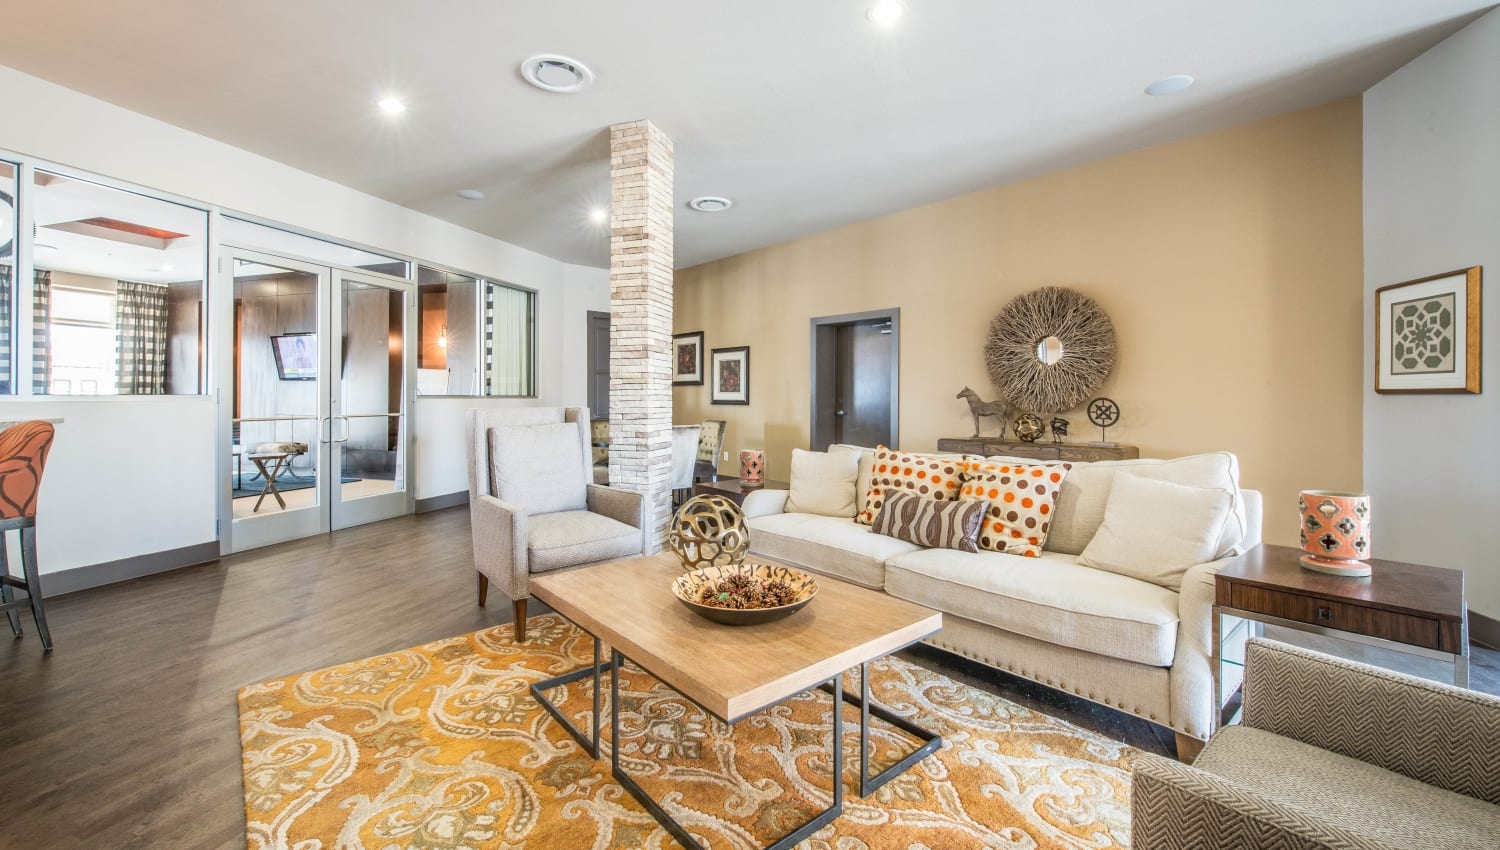 Lounge areas to relax with your friends in the clubhouse at Union At Carrollton Square in Carrollton, Texas